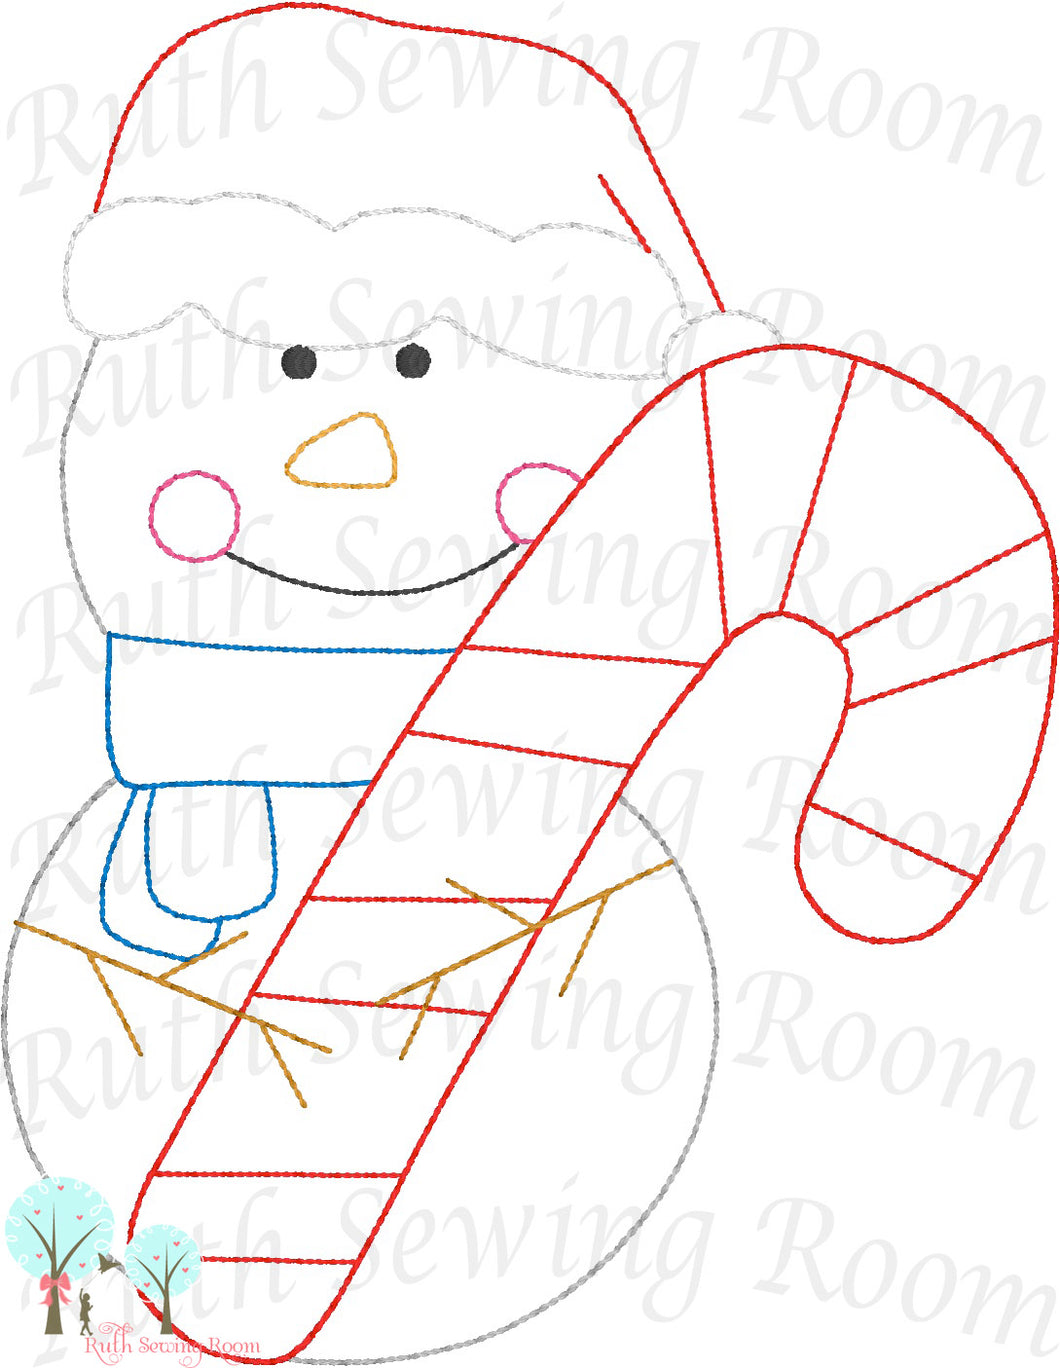 Snowman - Candy Cane  - Christmas Vintage Stitch  -   Embroidery Design Instant Download Machine Embroidery